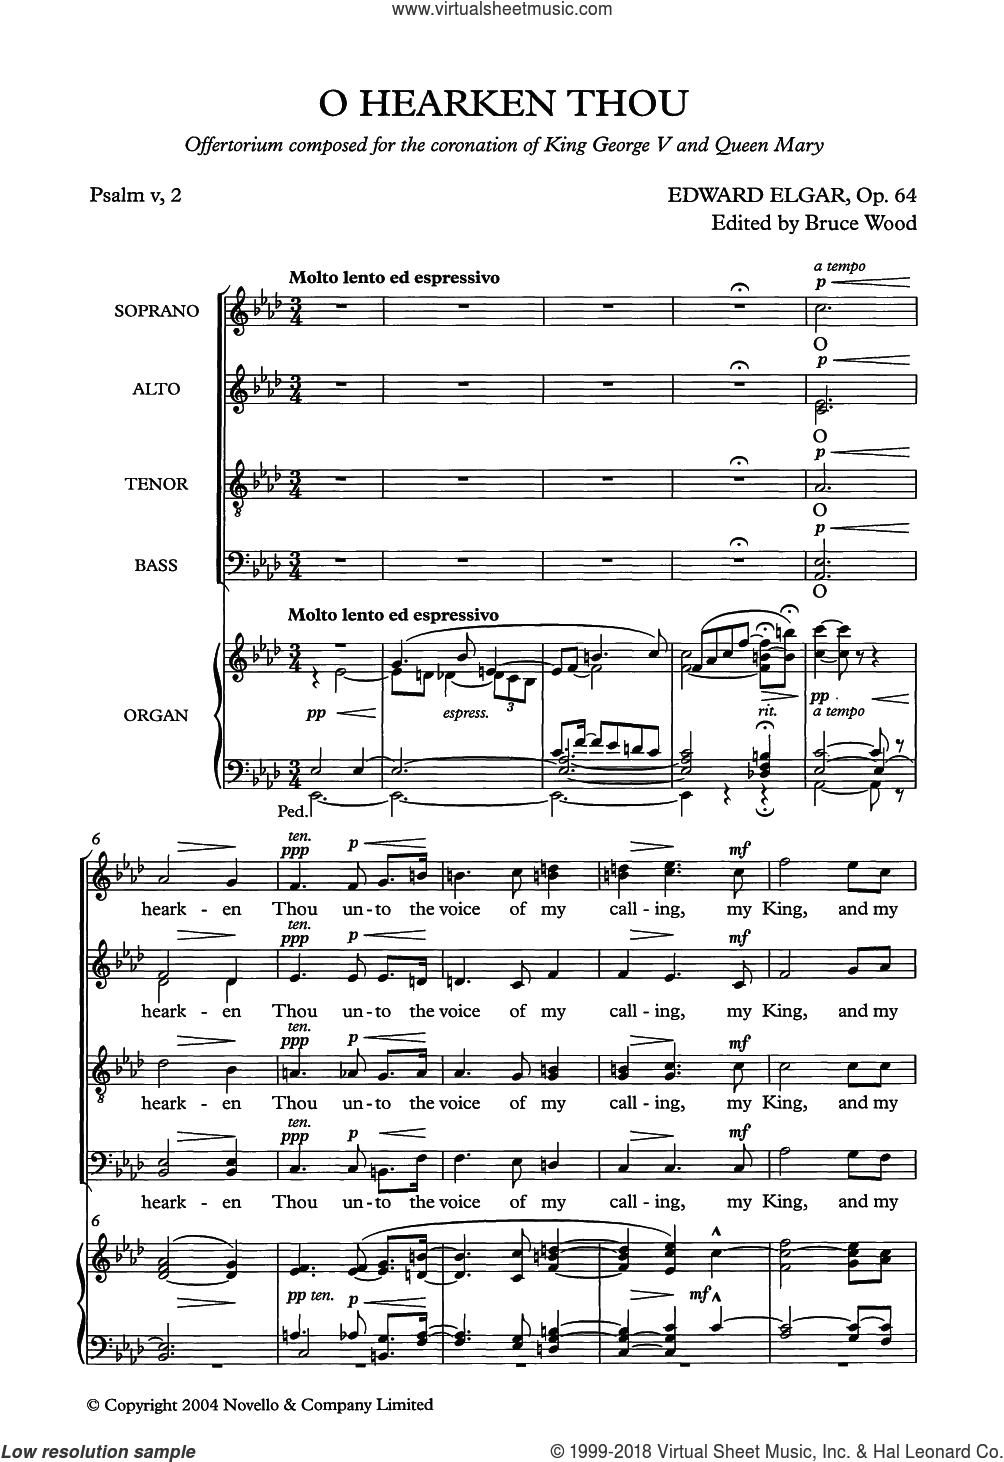 O Hearken Thou sheet music for choir by Edward Elgar, classical score, intermediate. Score Image Preview.